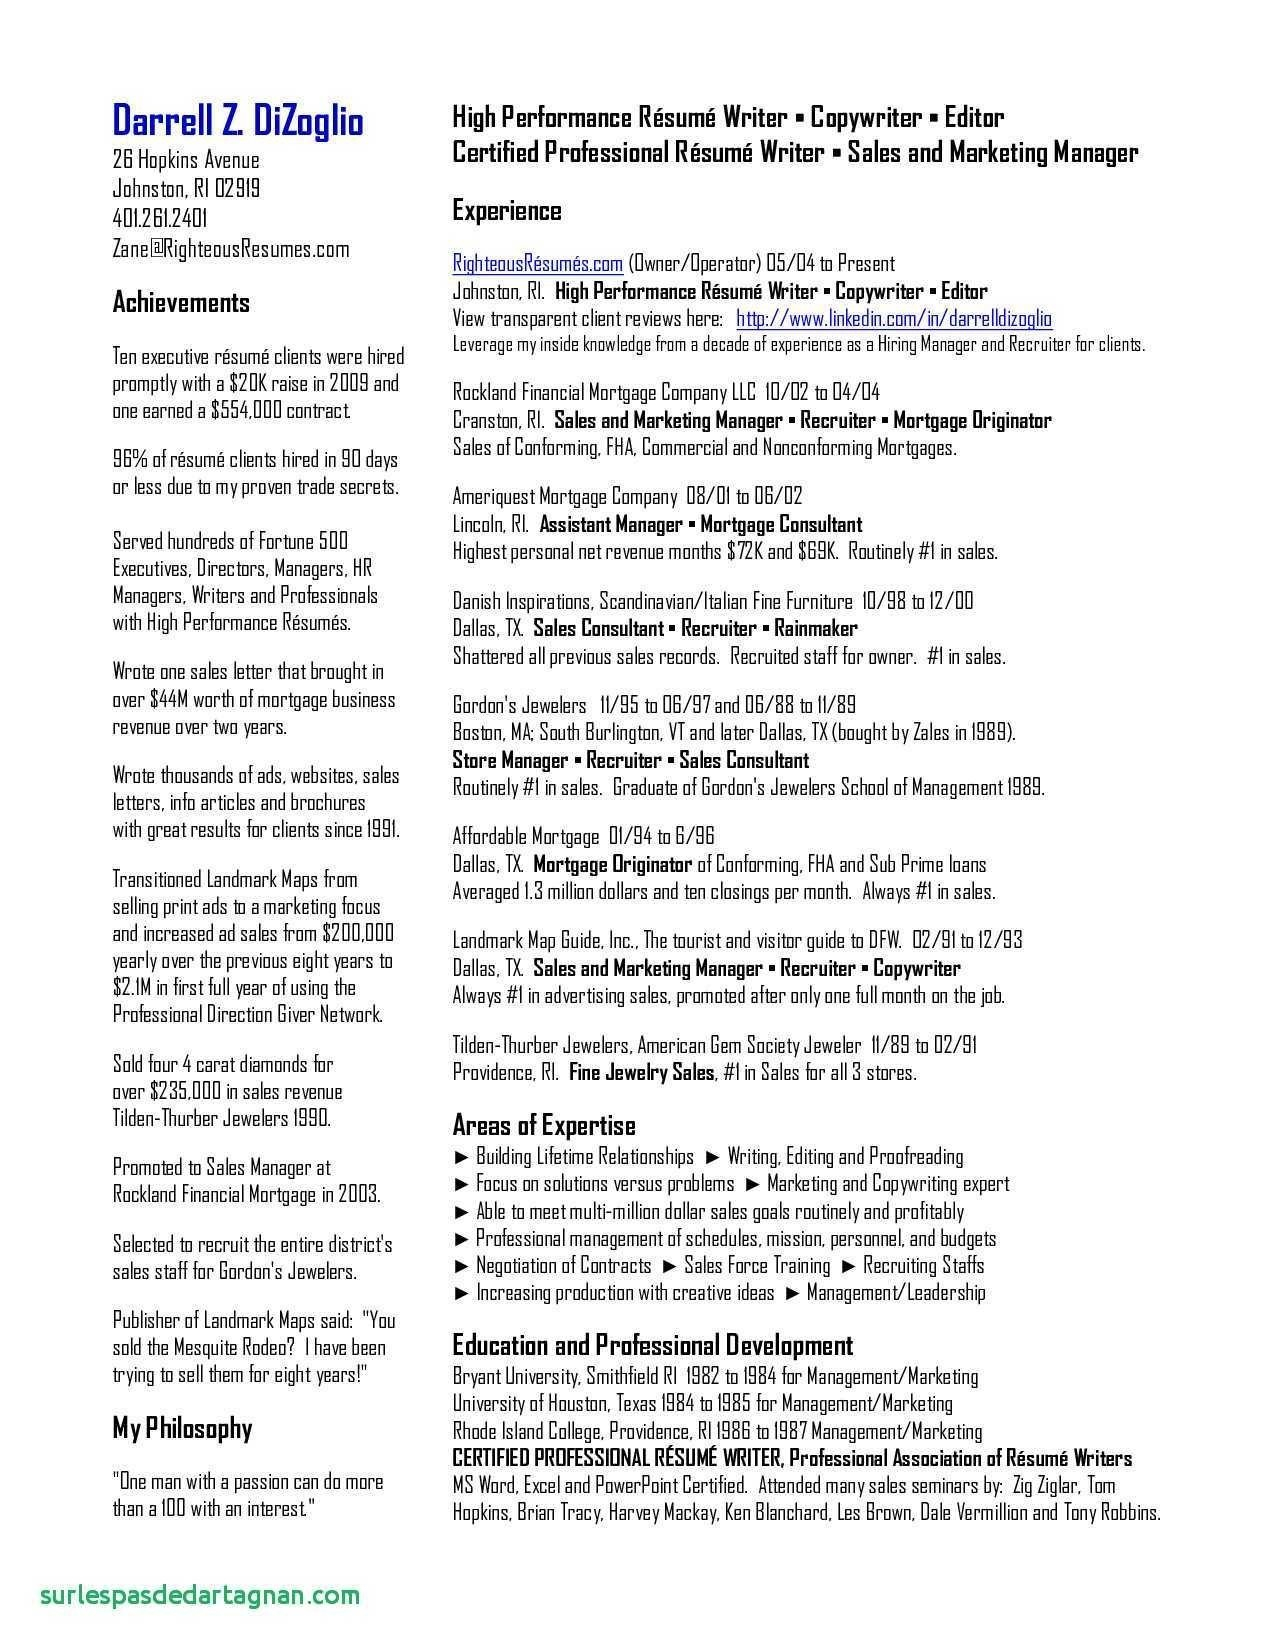 Leadership Resume Template - Free Fill In the Blank Resume Resume Resume Examples 2dnannzaoy